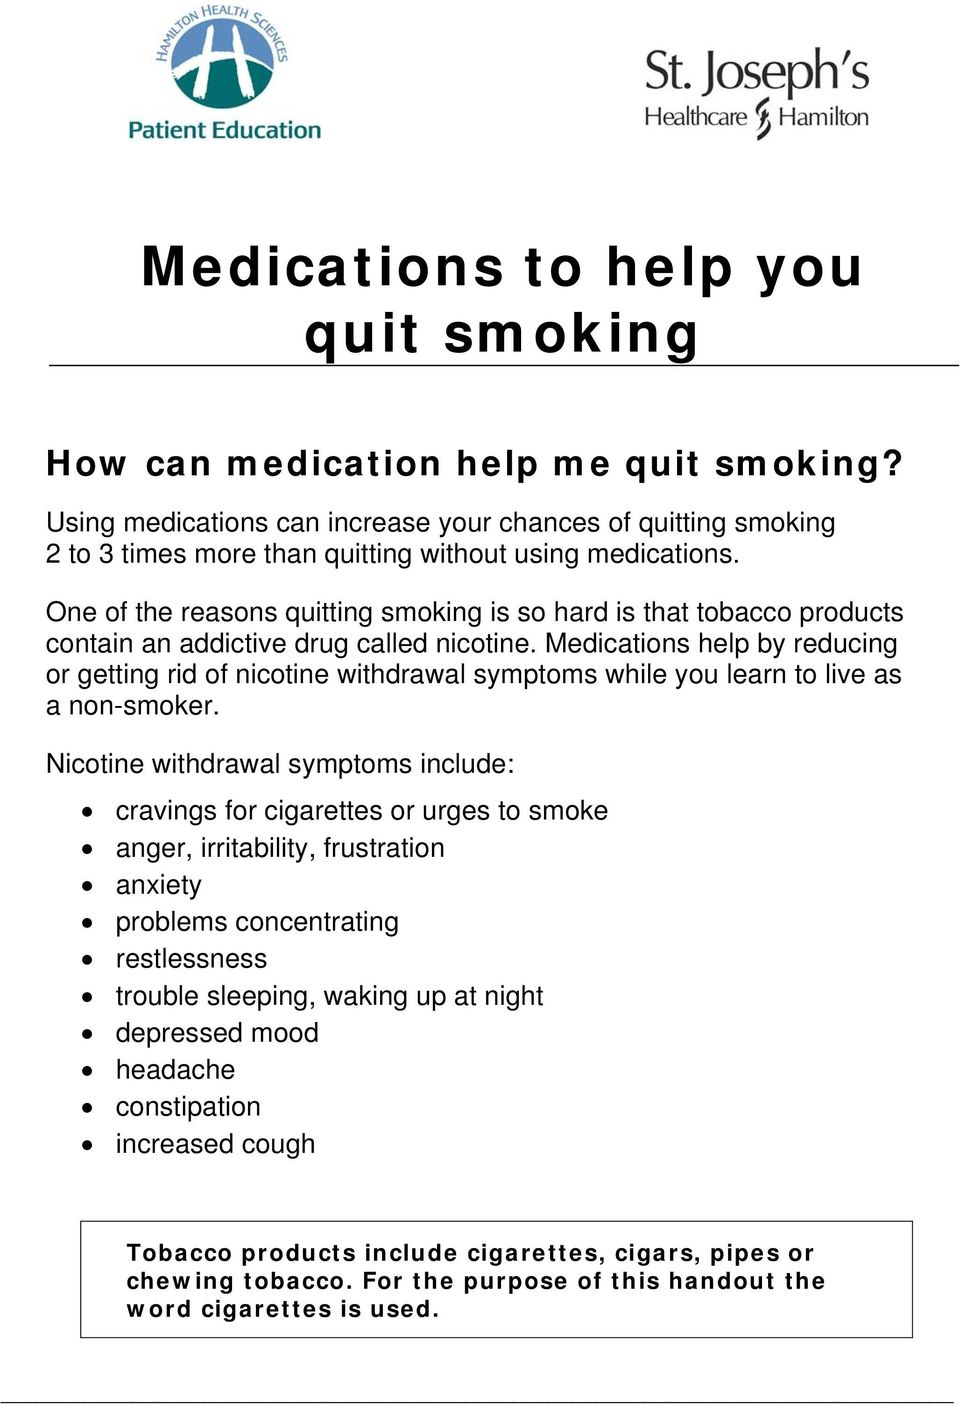 Medications help by reducing or getting rid of nicotine withdrawal symptoms while you learn to live as a non-smoker.